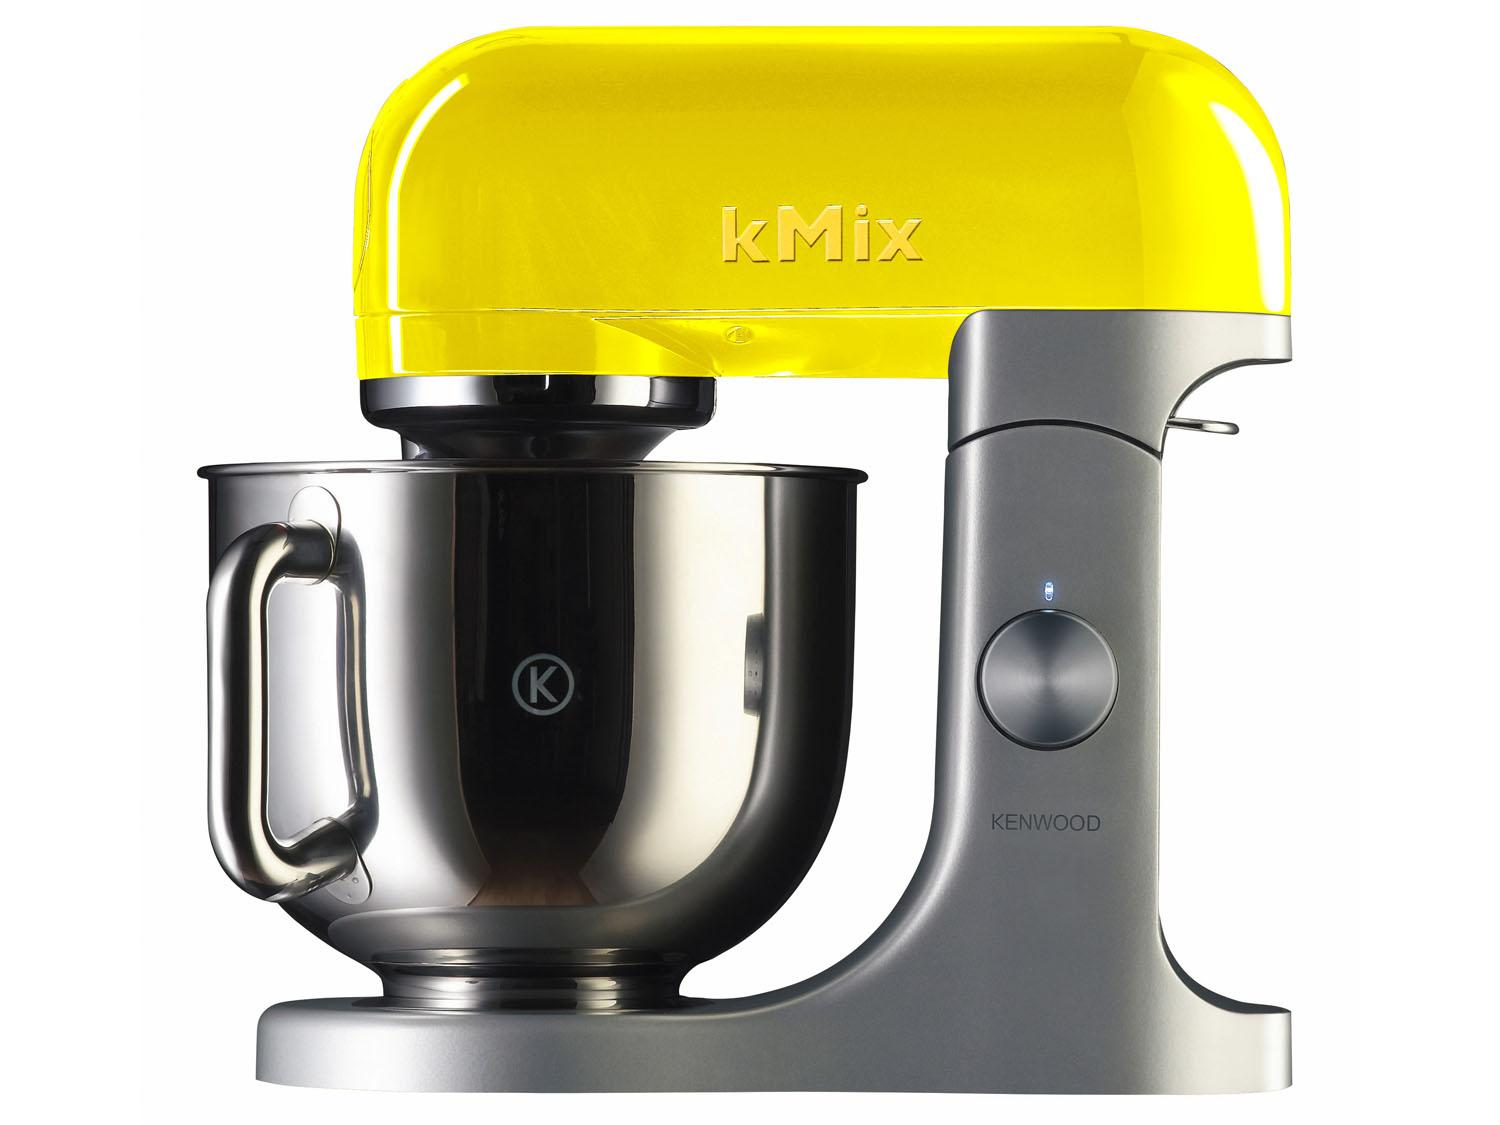 robot multifonctions kenwood kmix pmx98 lemon tonic. Black Bedroom Furniture Sets. Home Design Ideas